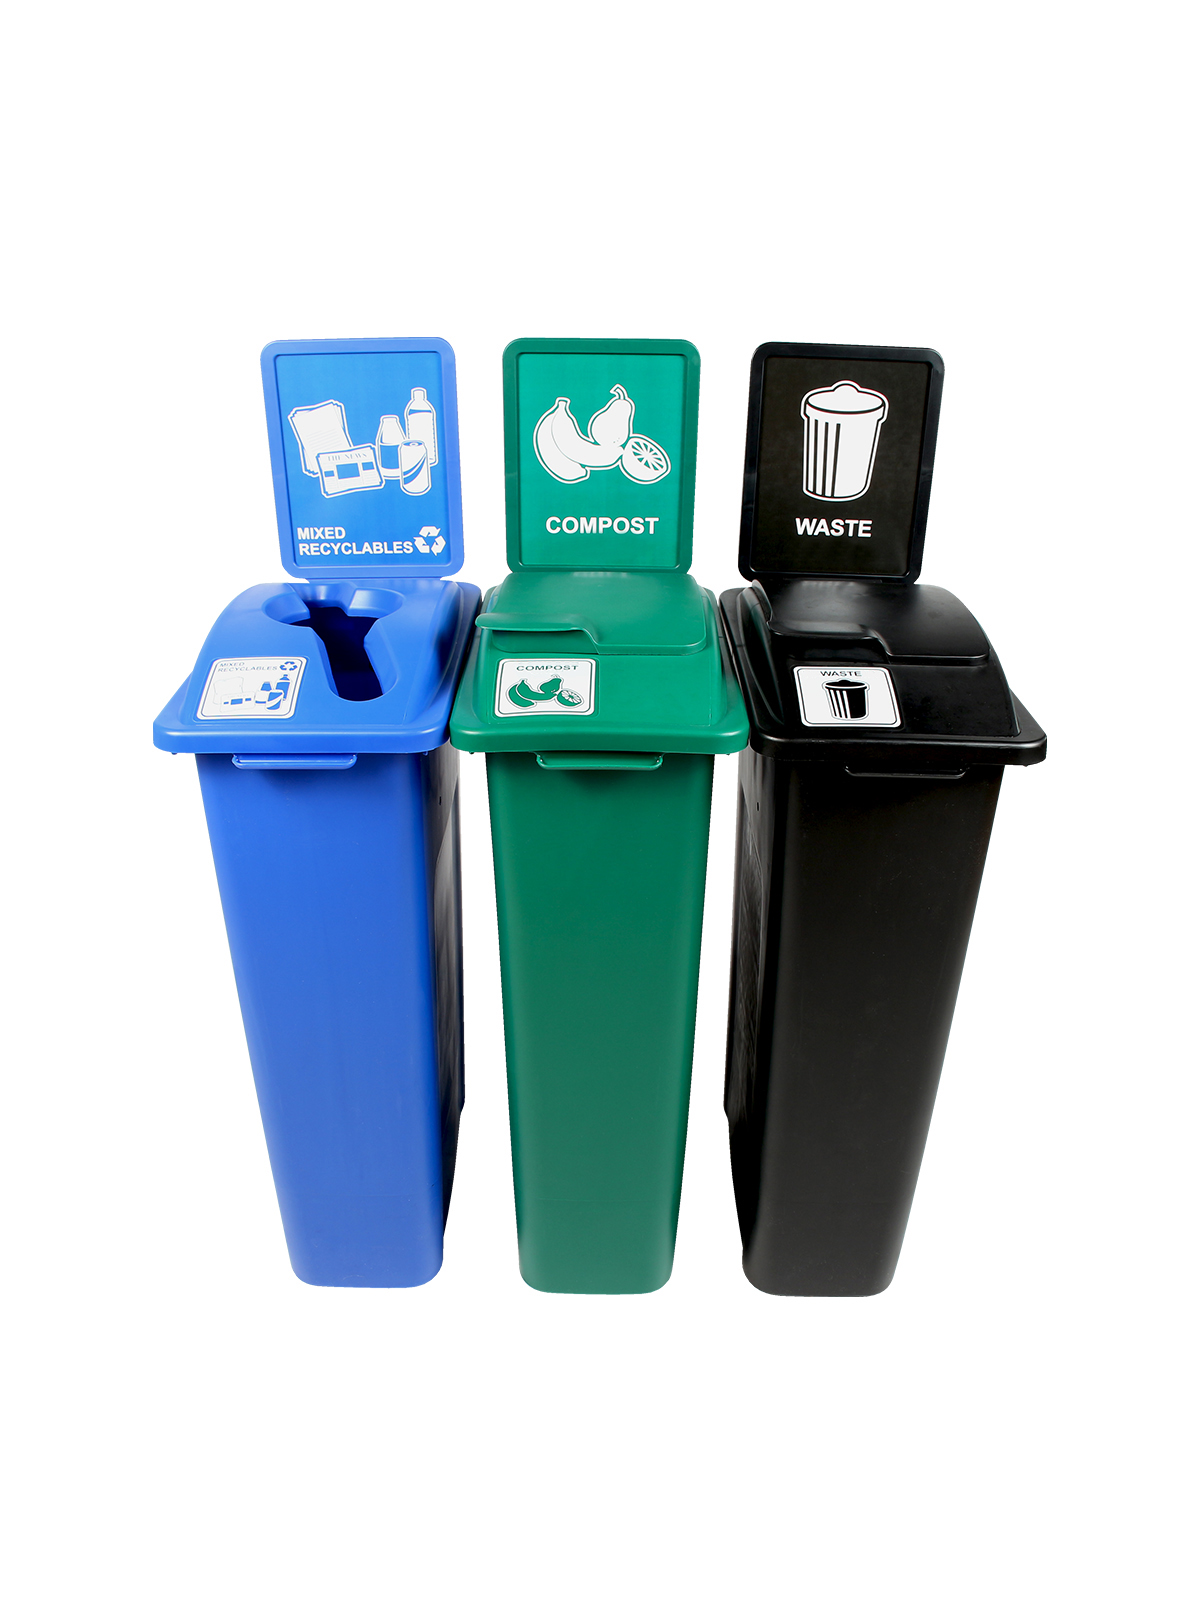 WASTE WATCHER - Triple - Mixed Recyclables-Compost-Waste - Mixed-Solid Lift-Solid Lift - Blue-Green-Black